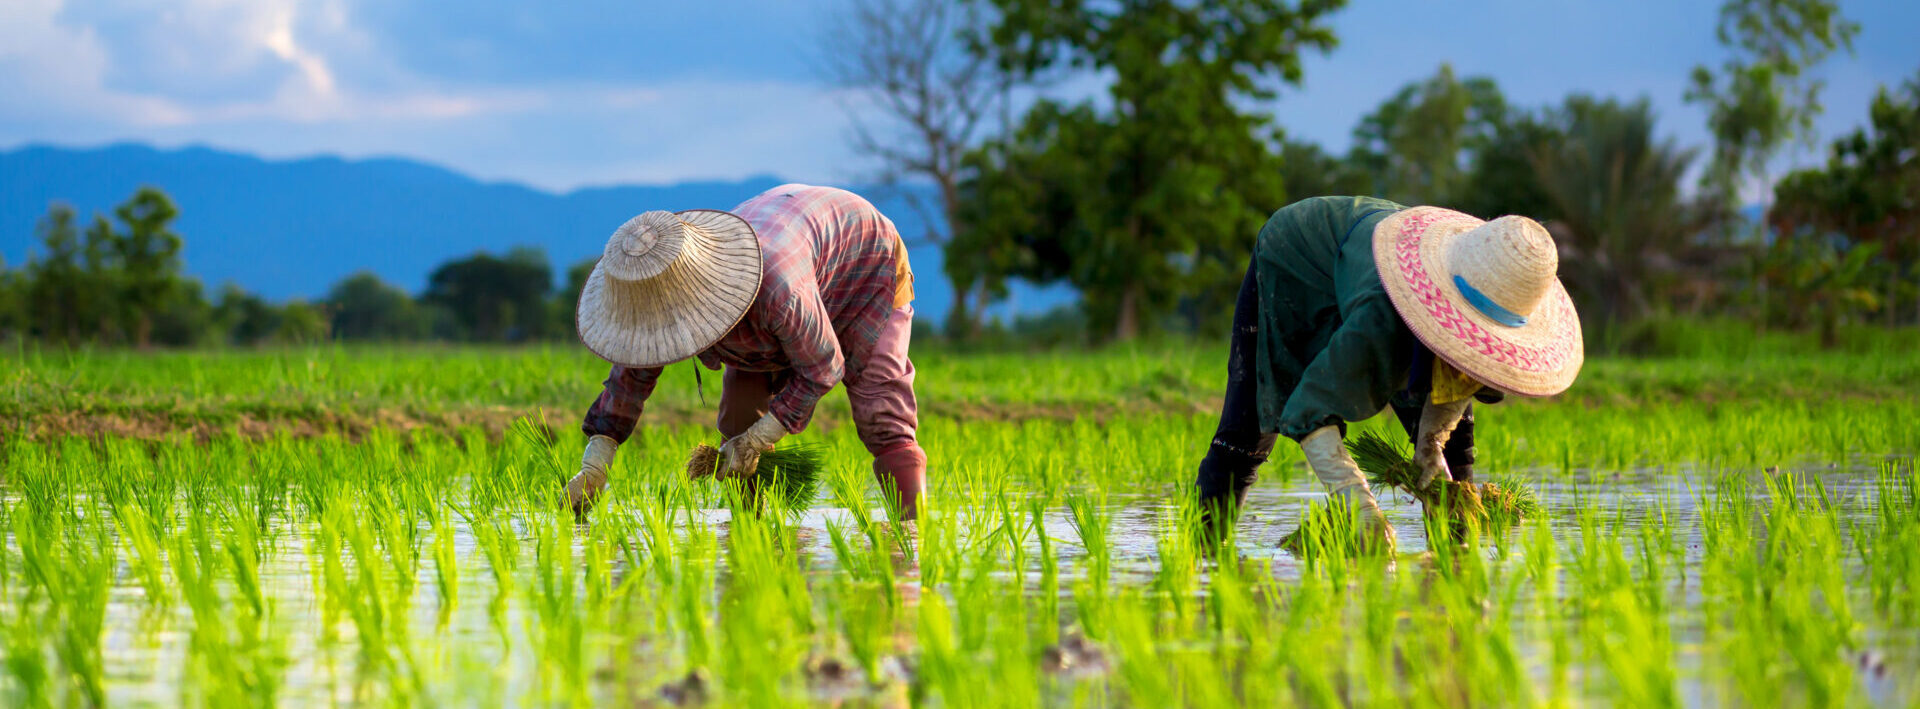 Farmers,Are,Planting,Rice,In,The,Rice,Paddy,Field,On